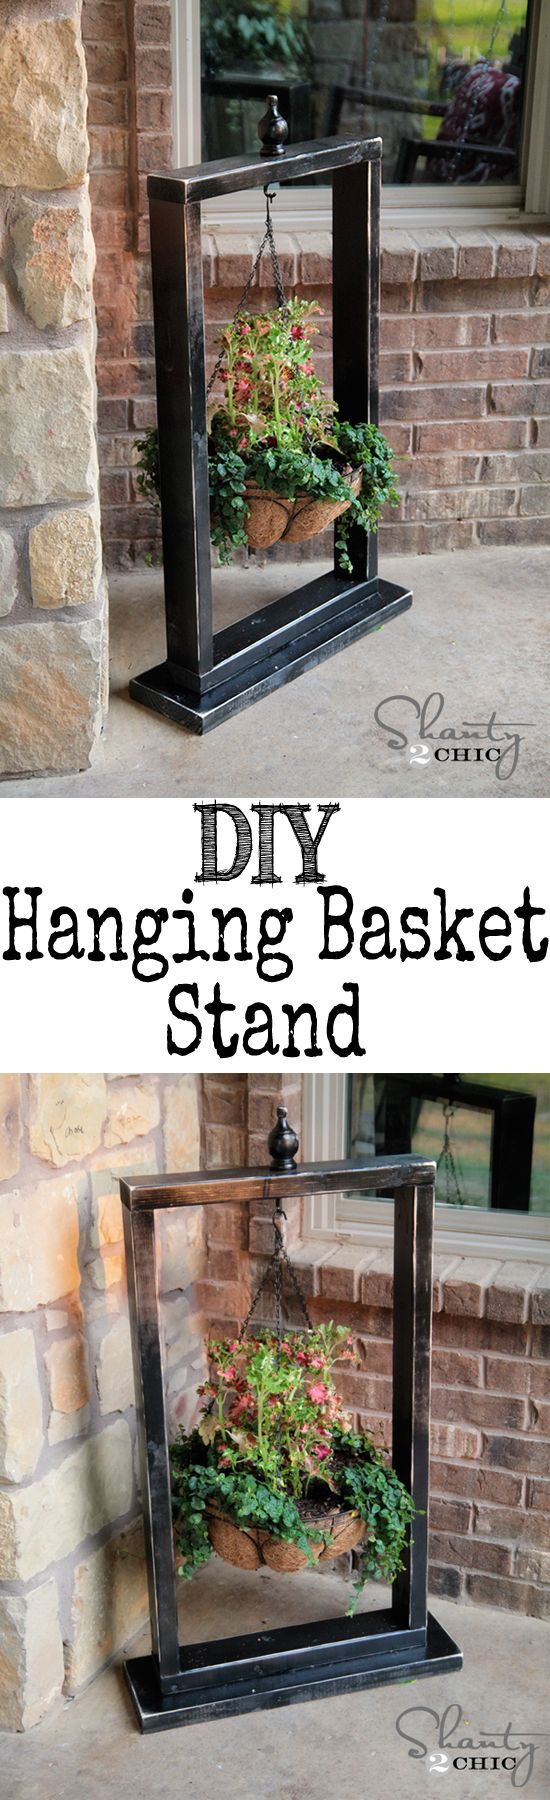 Super cute and easy Hanging Basket Stand! LOVE this!